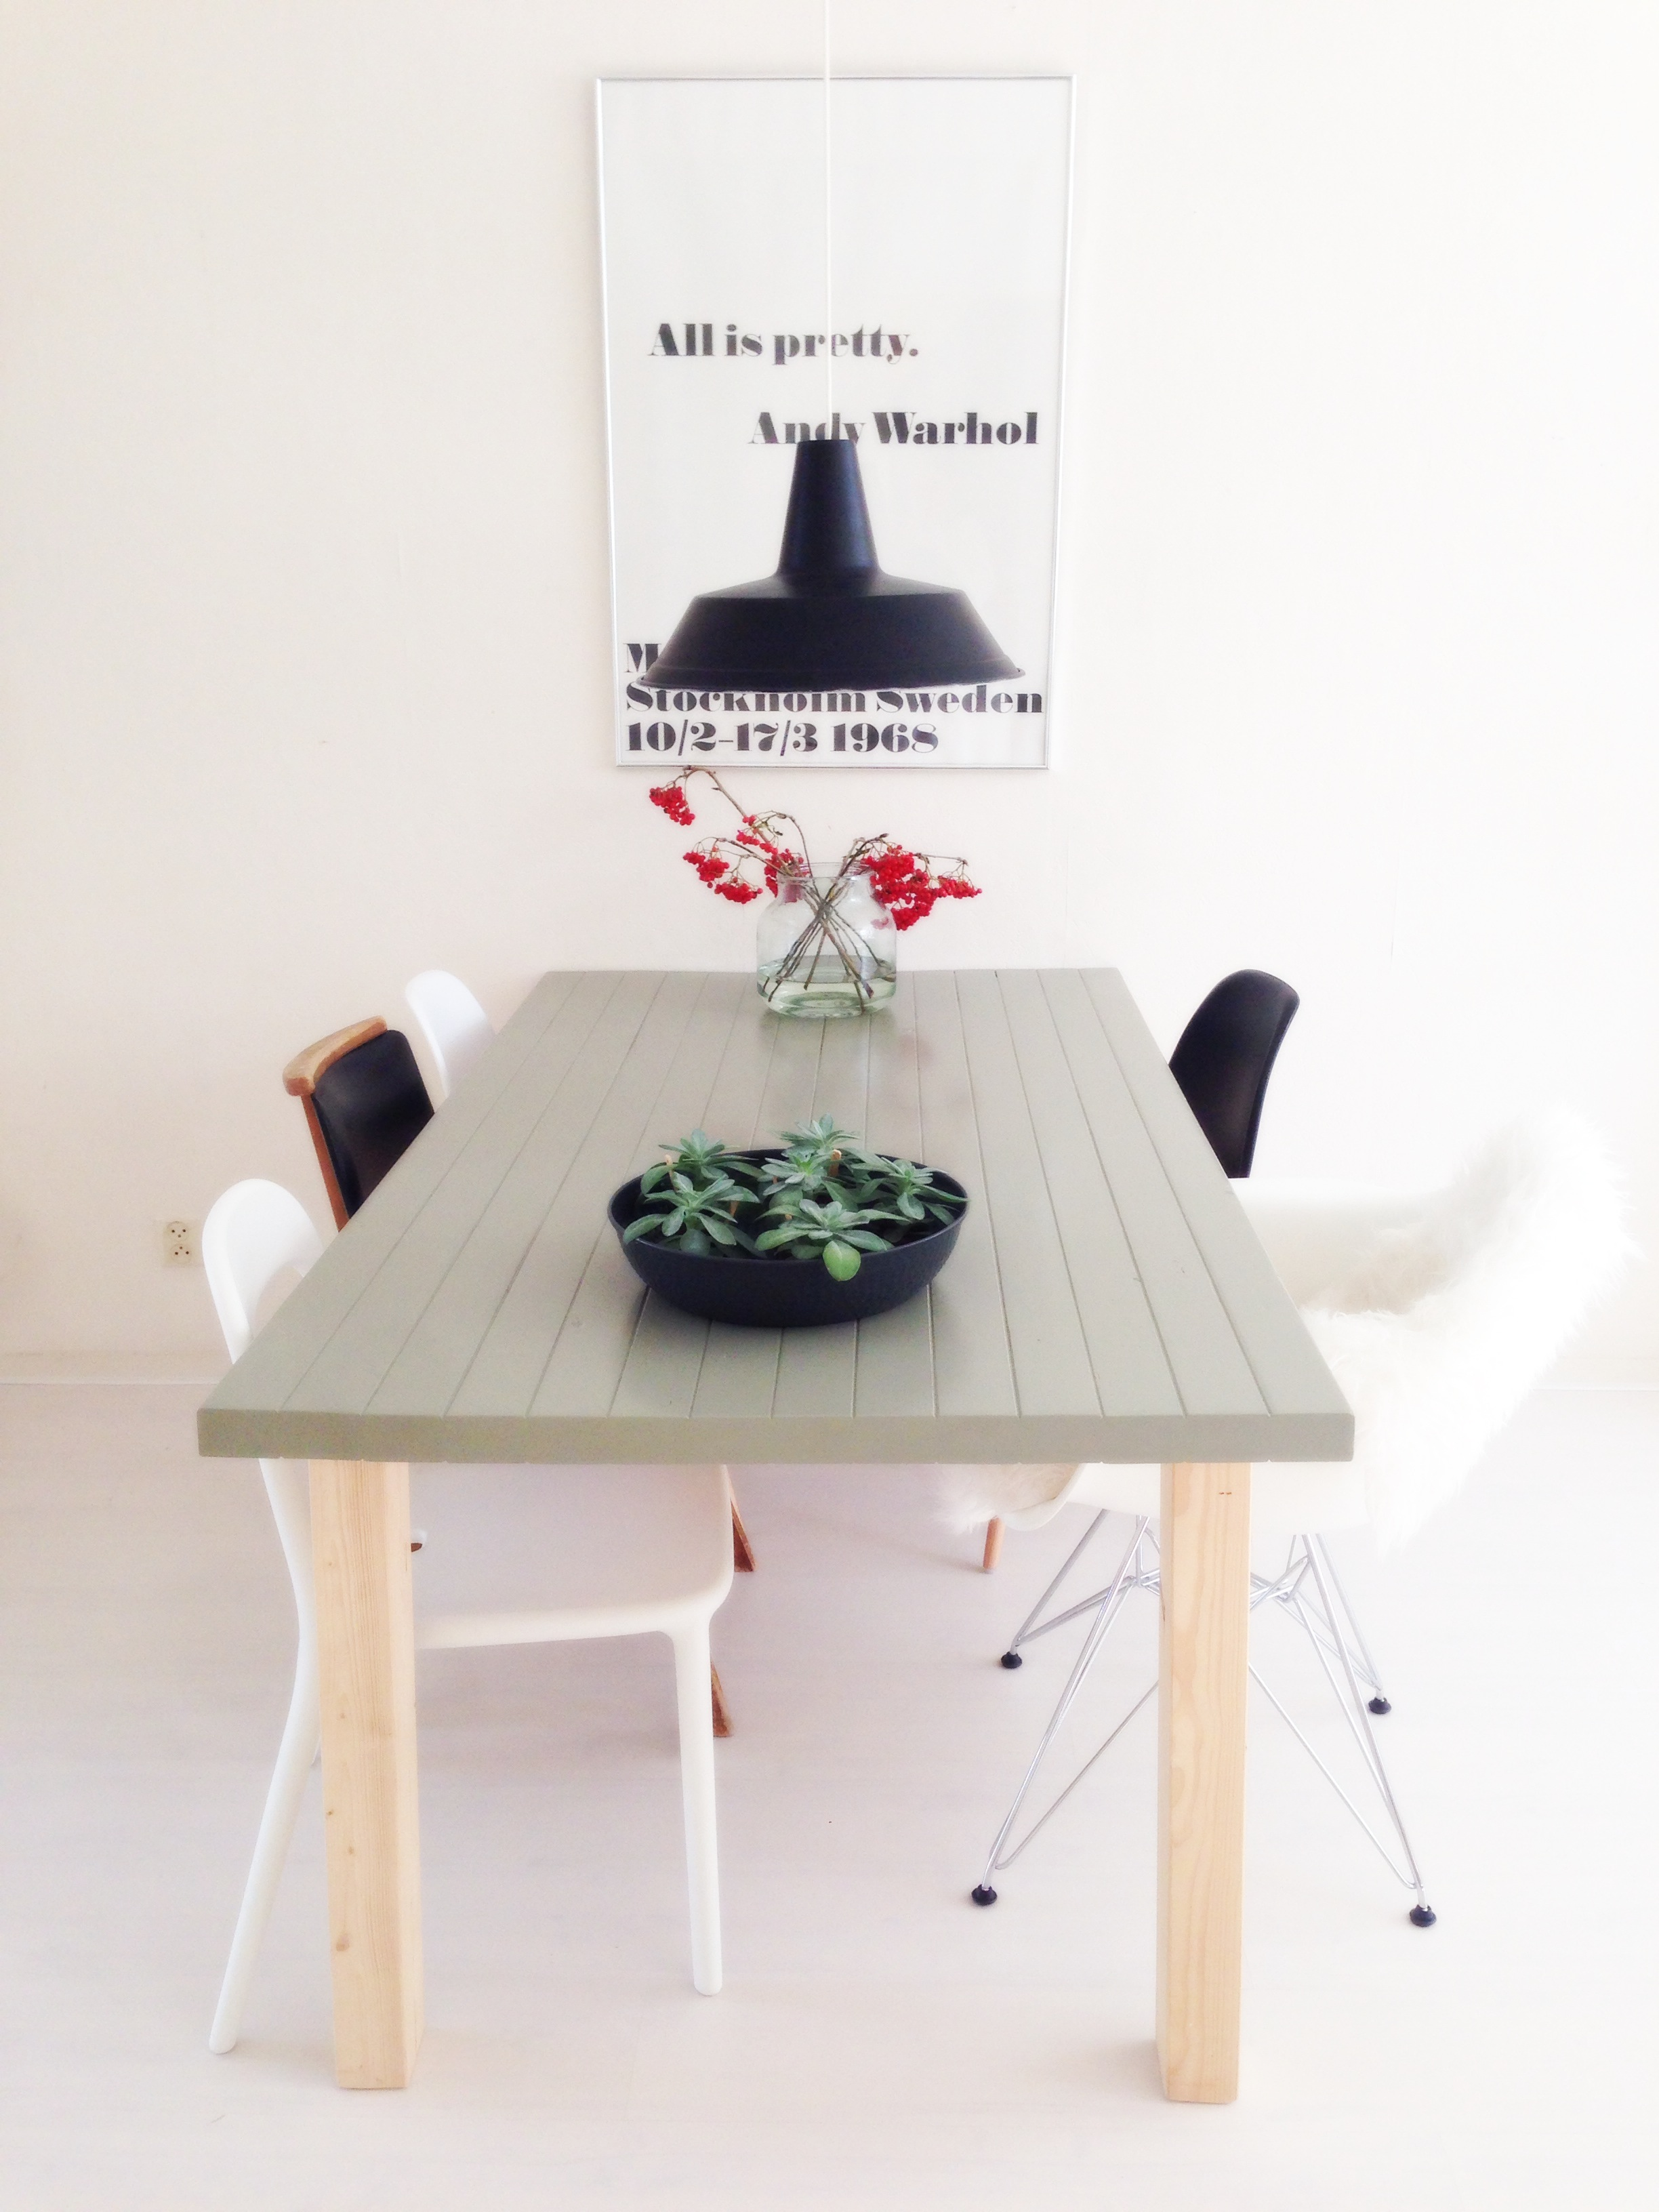 Ikea Eettafel Verven Do It Yourself Tafel Verven Donebymyself